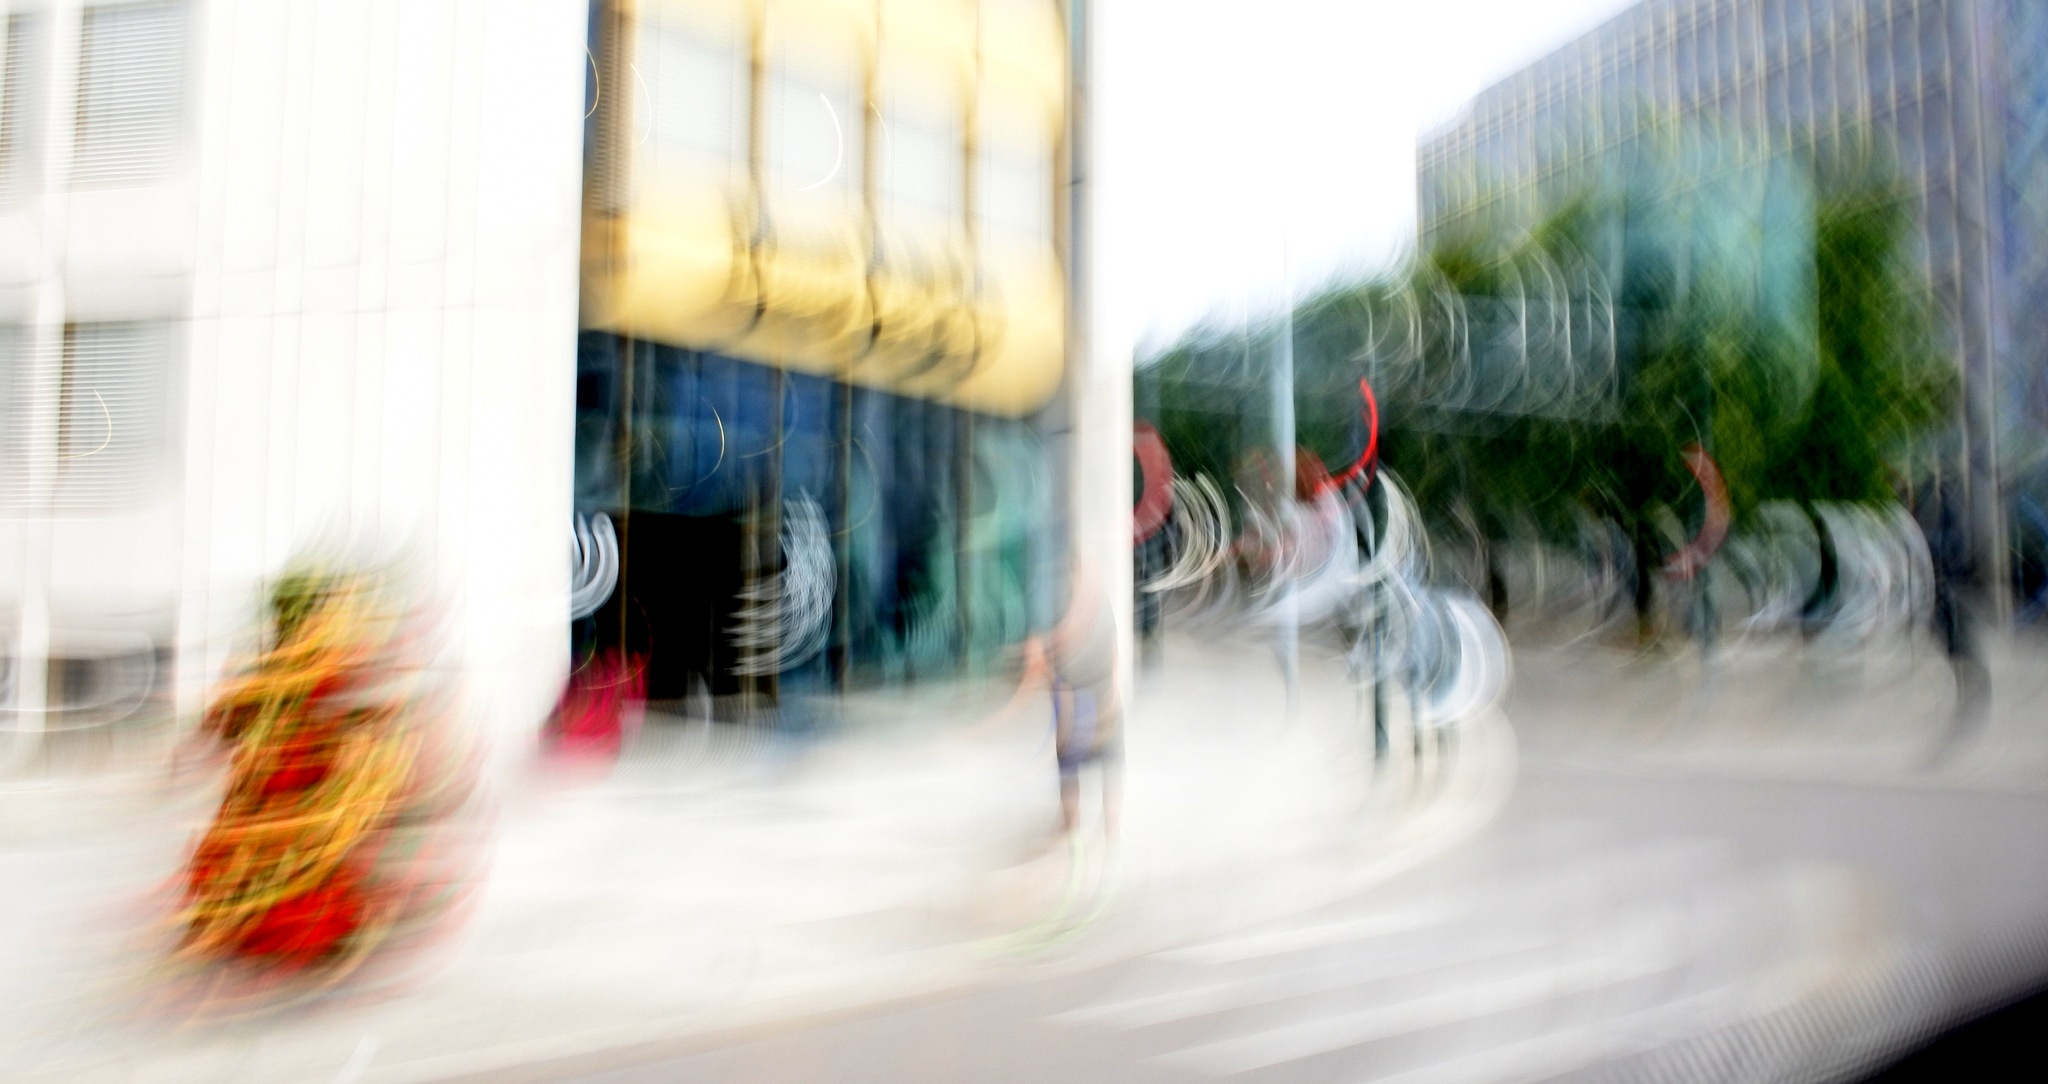 Movement Oslo by Lasse Tur